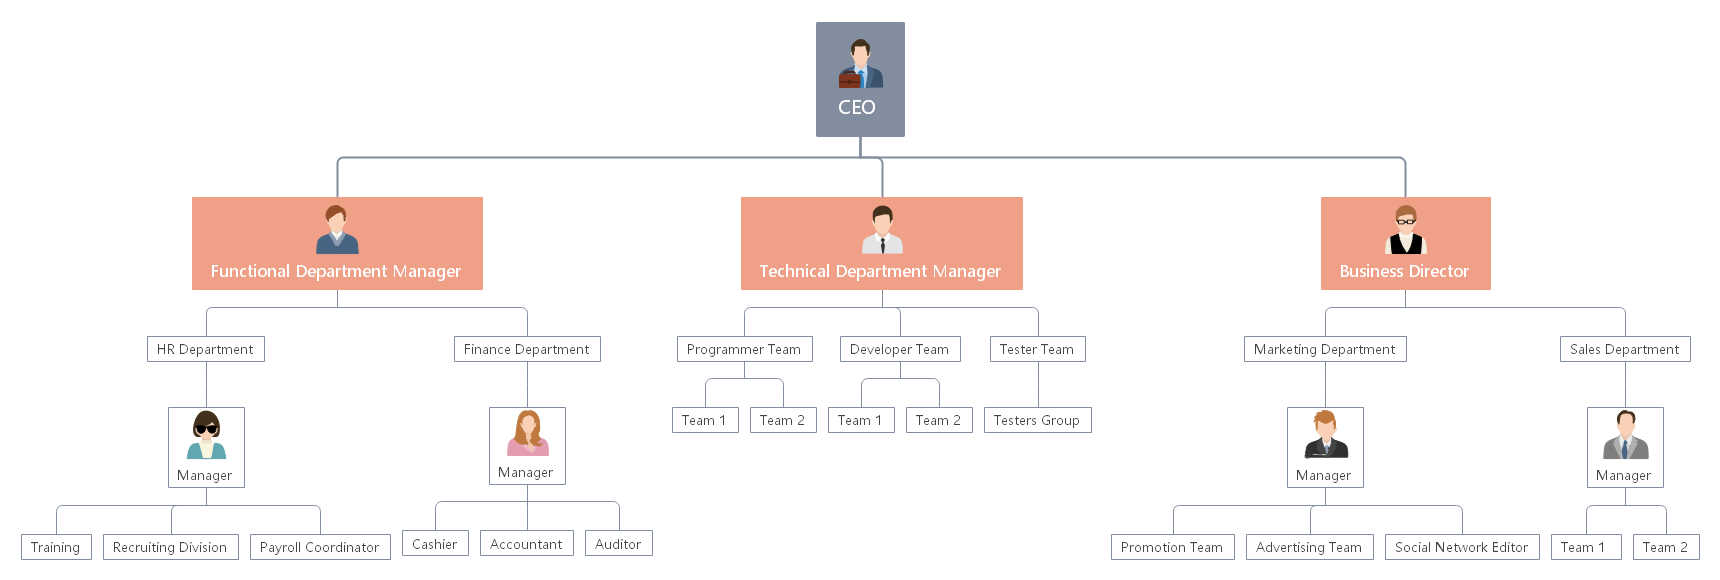 hierarchical-org-structure